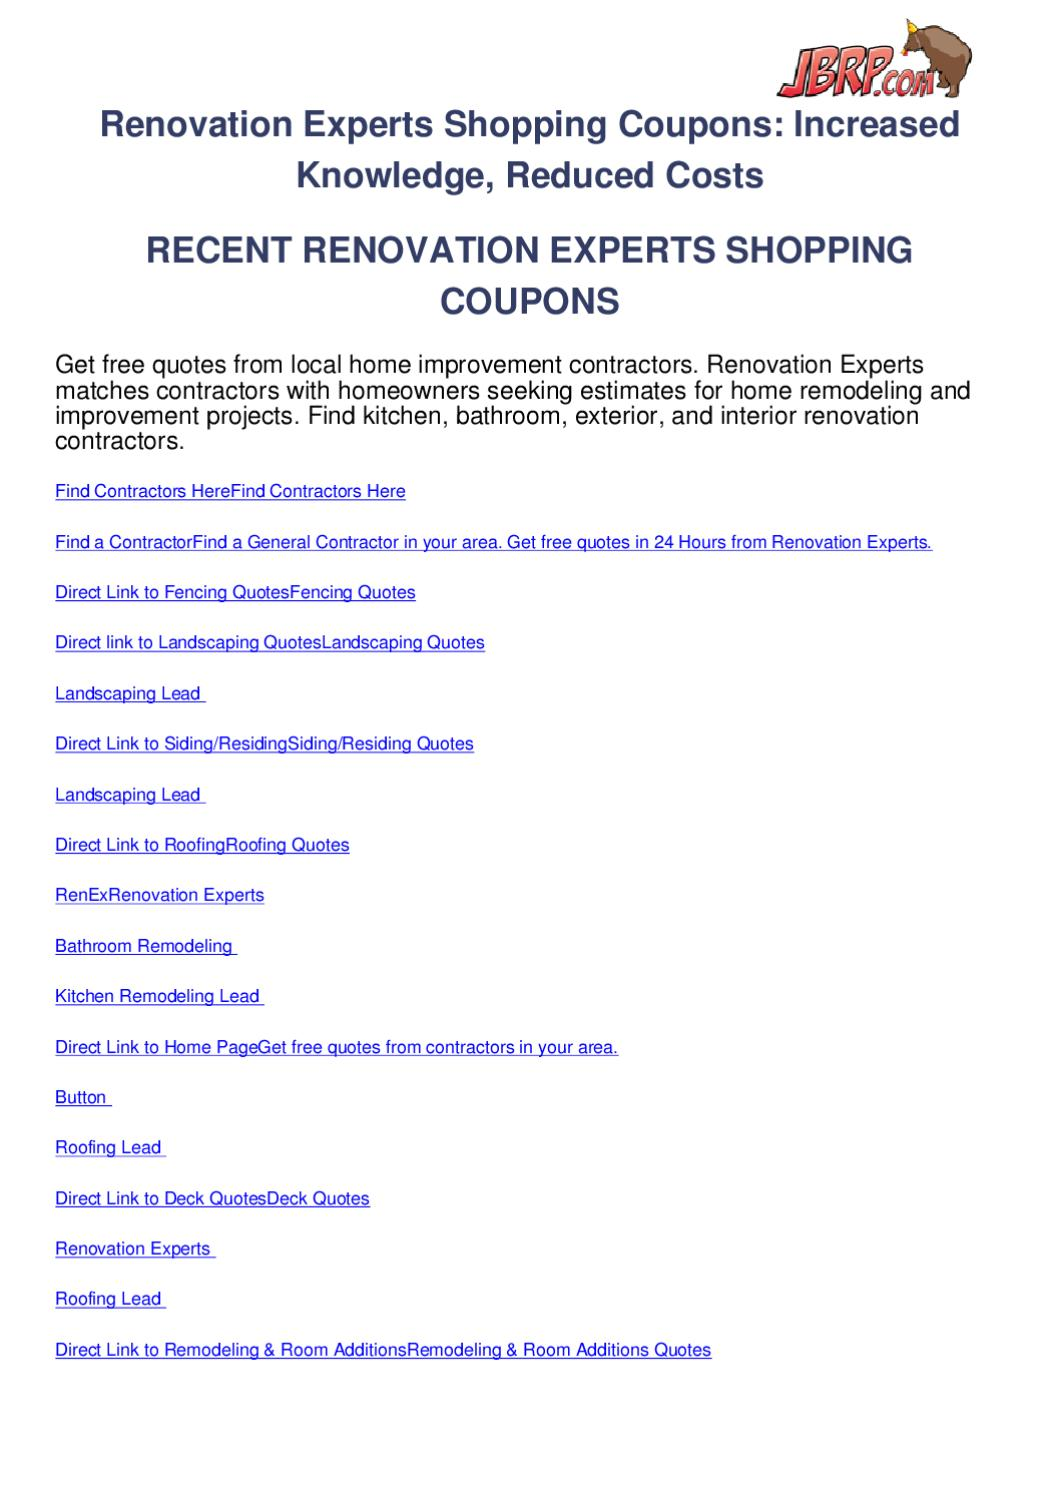 renovation experts shopping coupons by ben olsen issuu